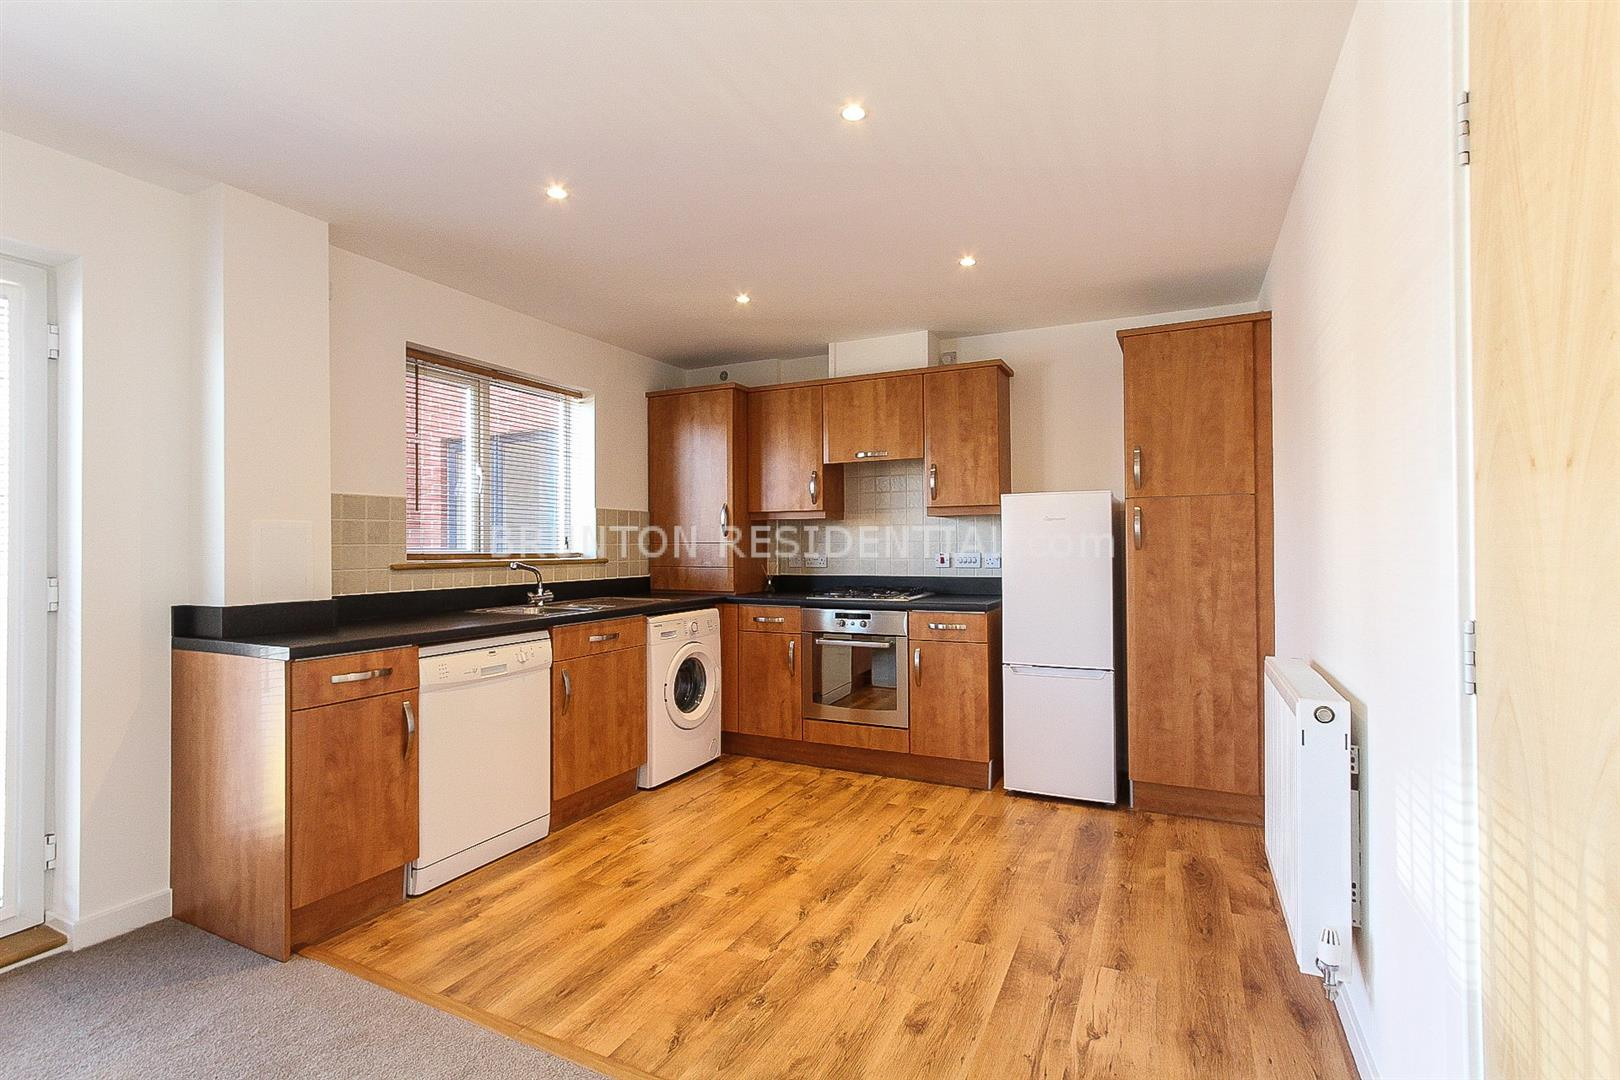 2 bed apartment to rent in St Michaels Vale, Hebburn - Property Image 1